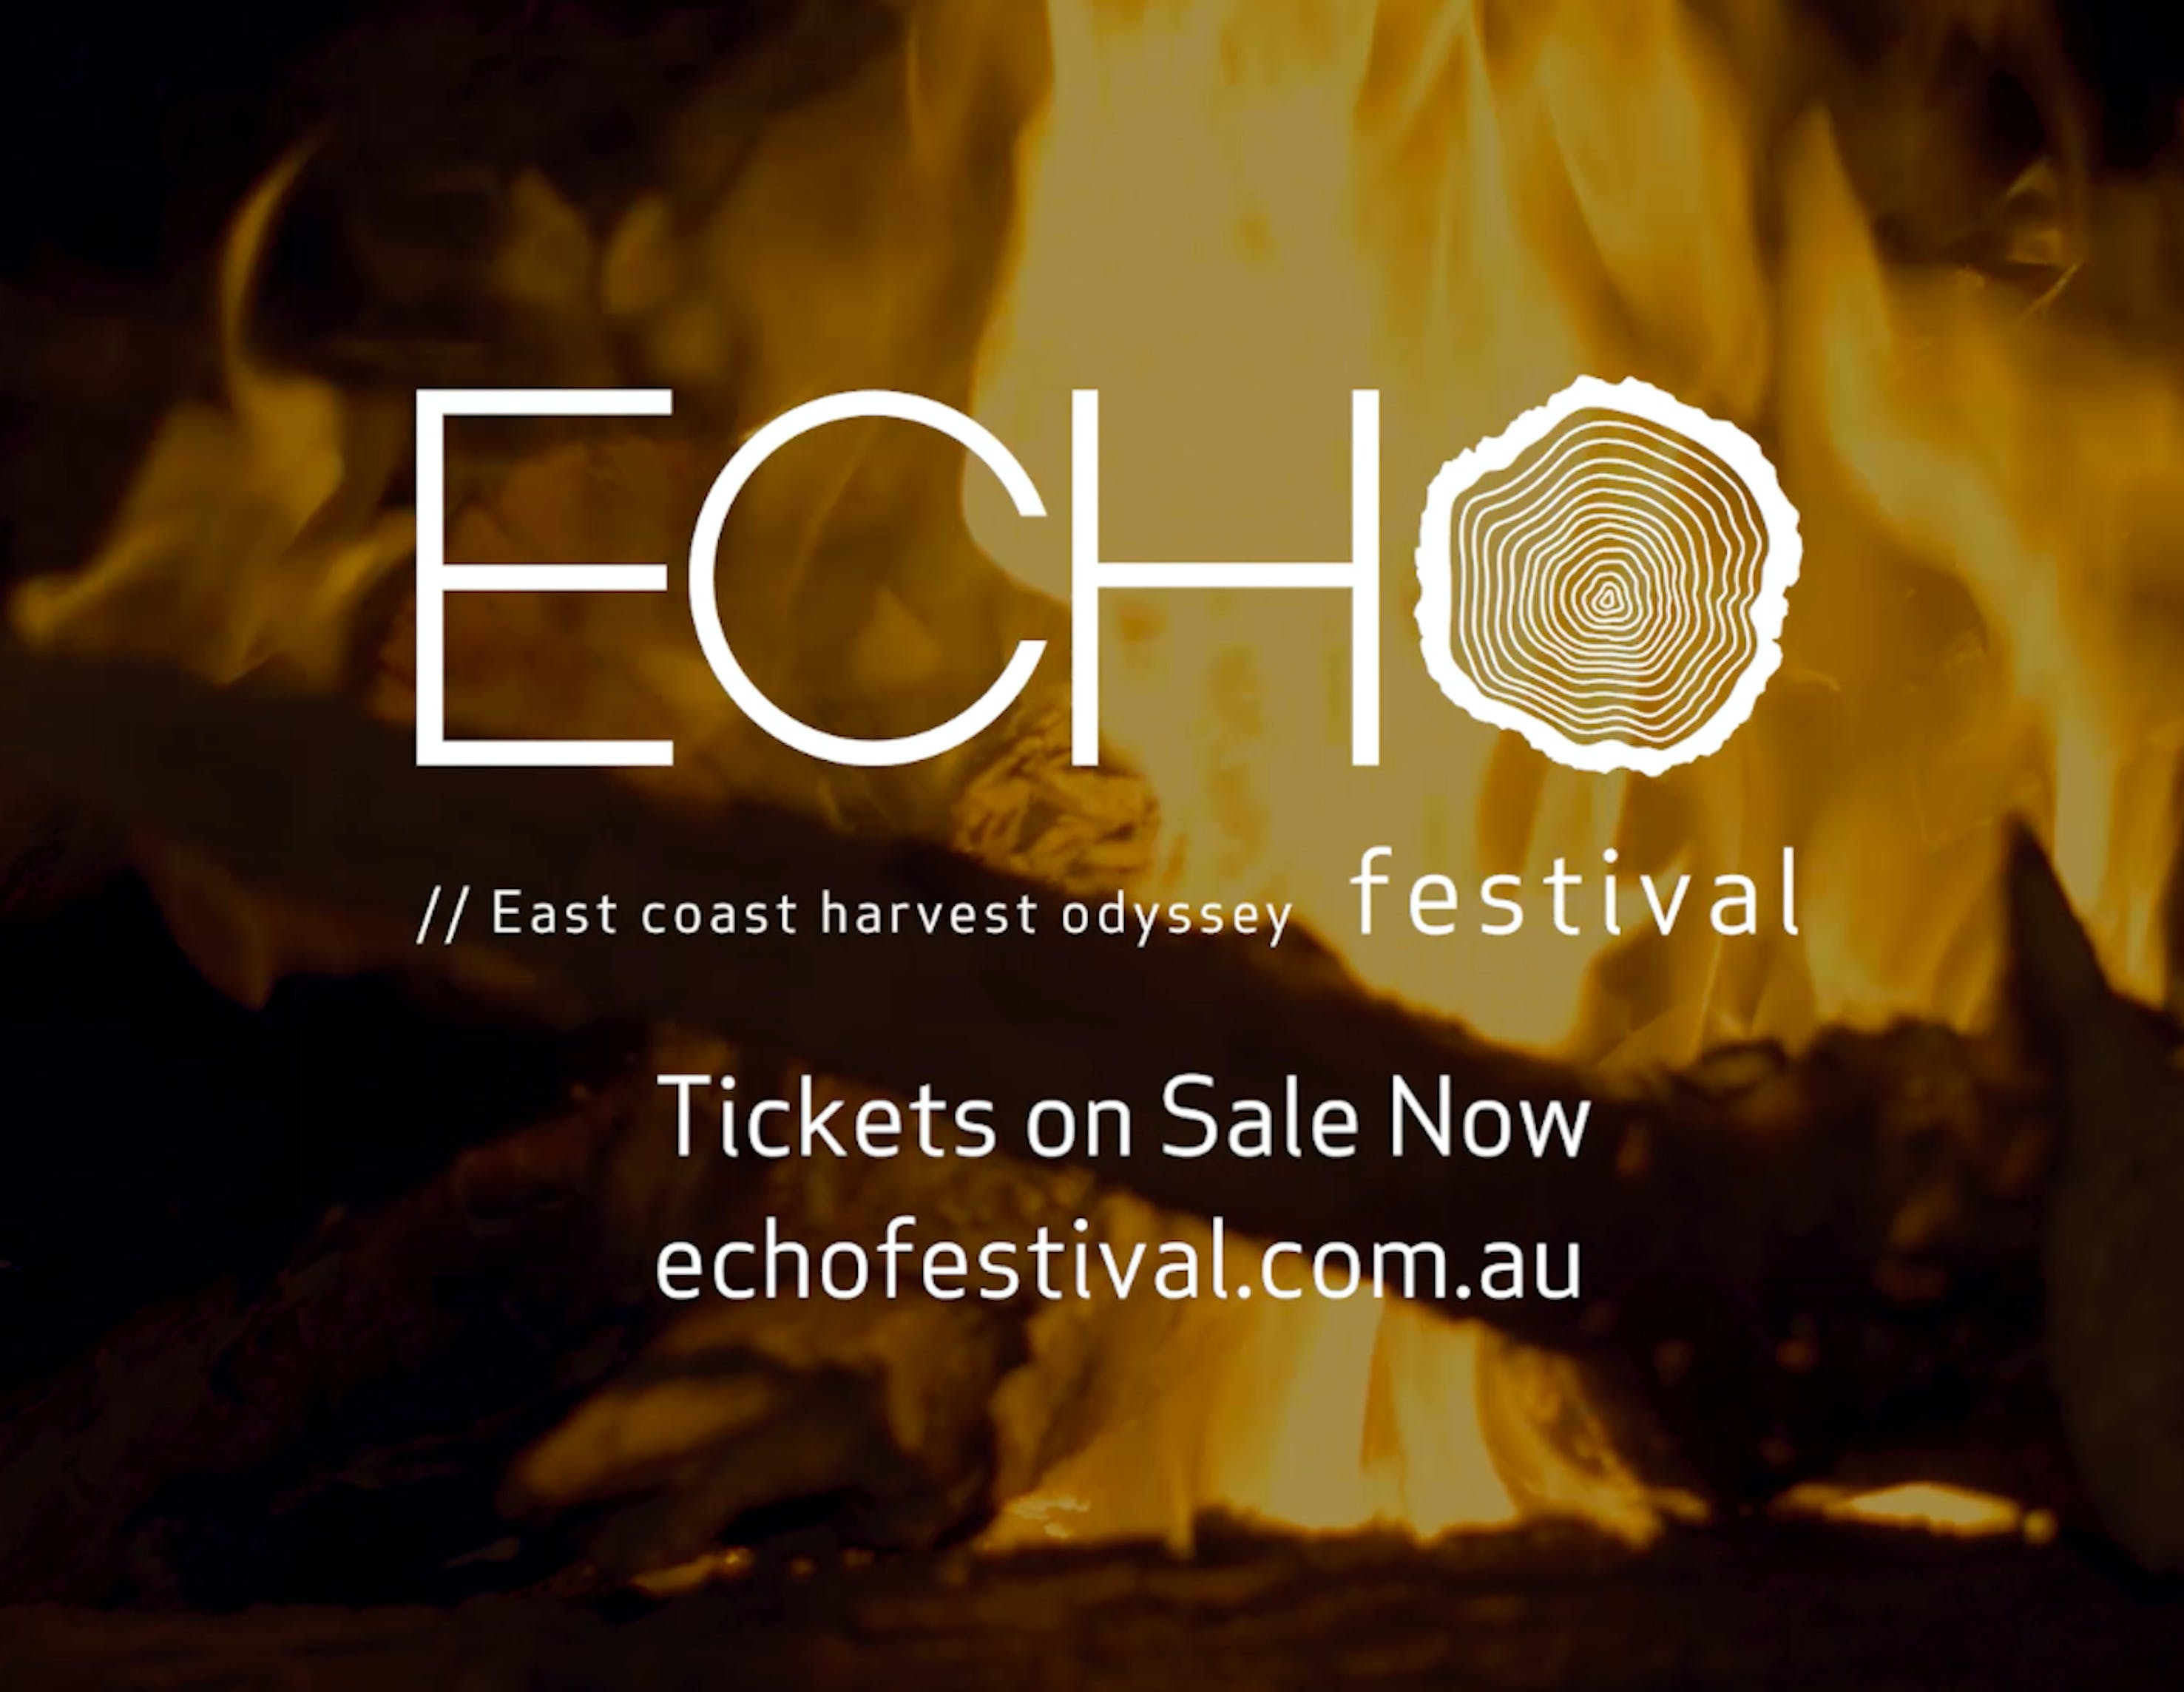 ECHO Festival - East Coast Harvest Odyssey 2021 - Hotel Accommodation